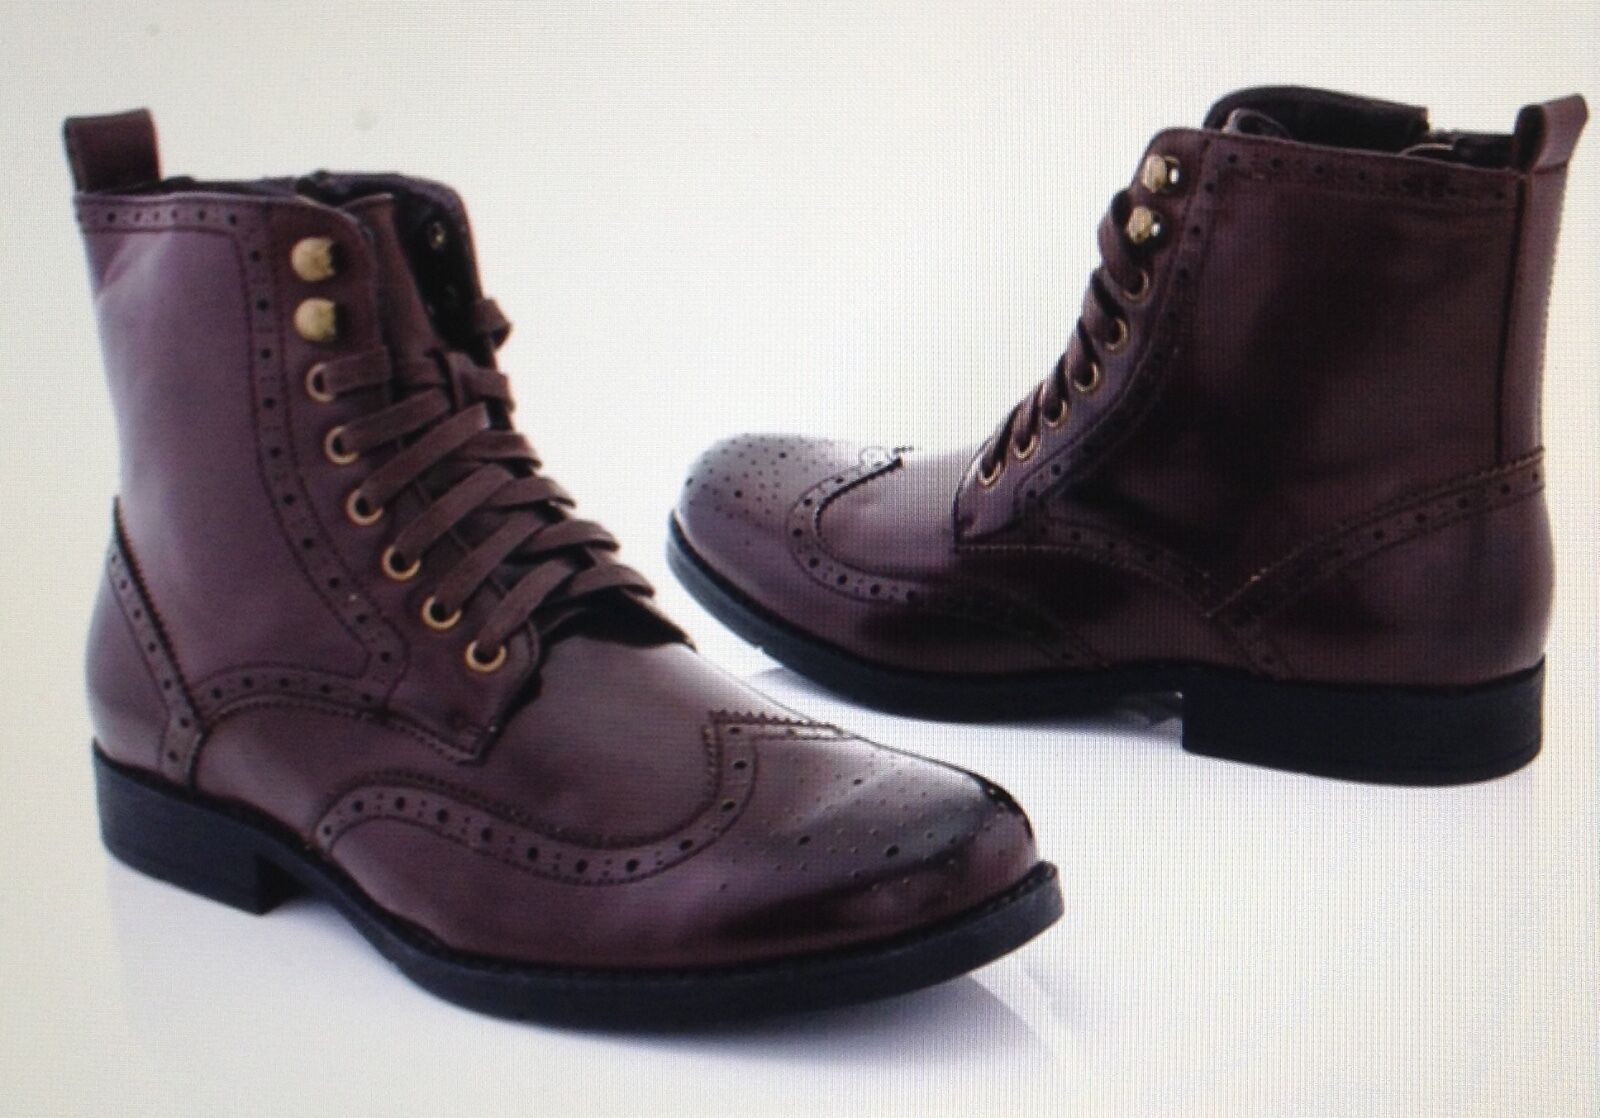 NEW Adolfo Men's Oxford Dress Boots, S 1292 style, dark Brown Size 8